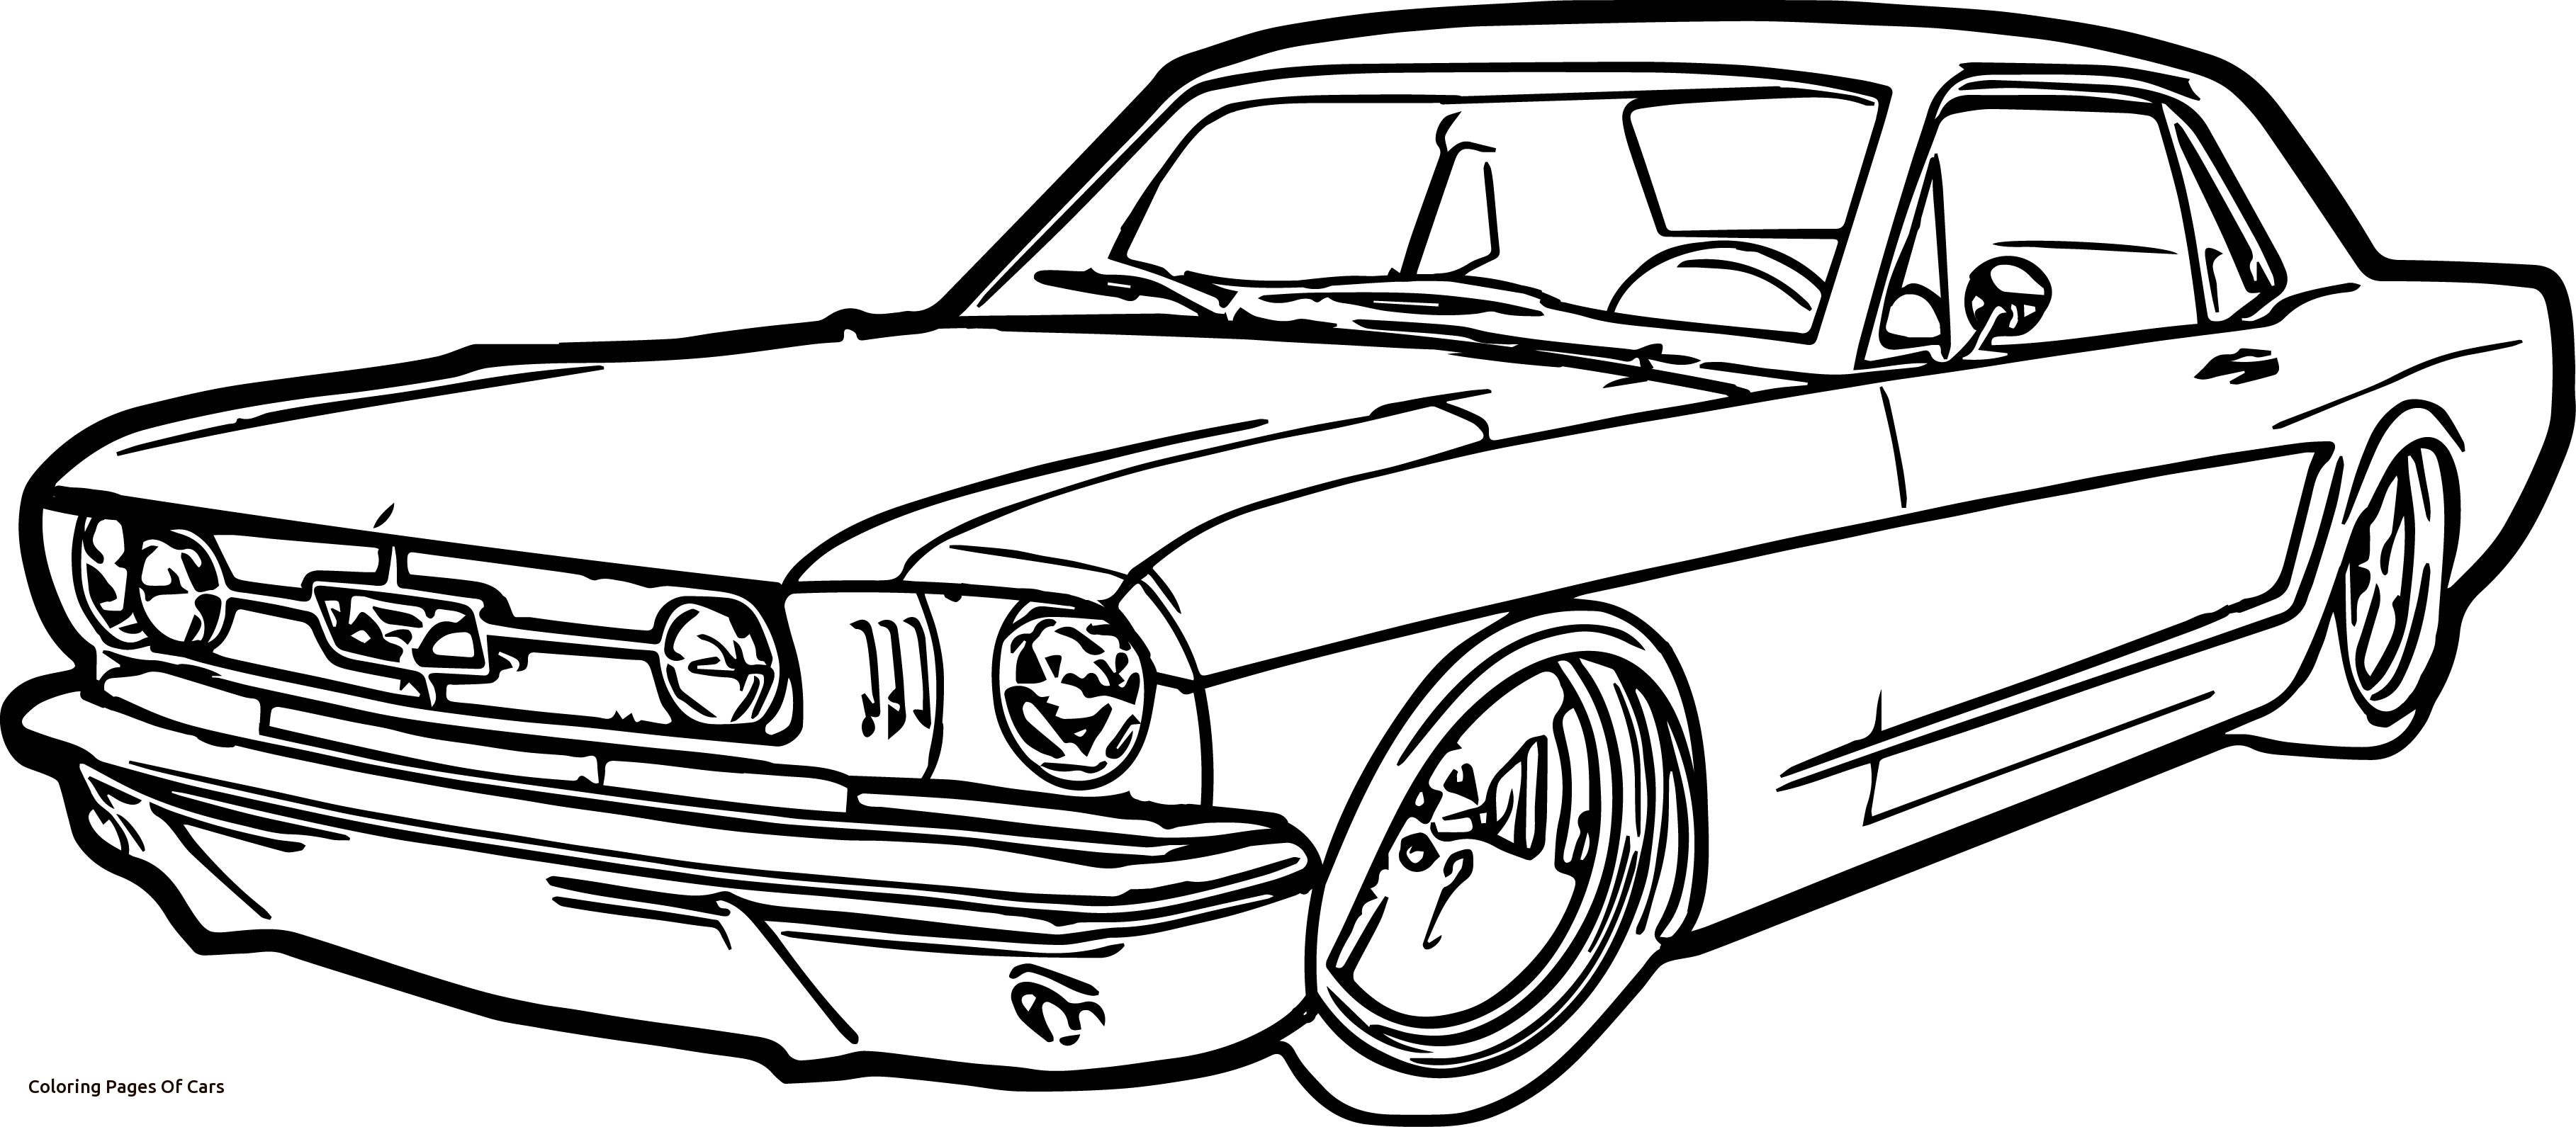 Fox Body Mustang Drawing at GetDrawings Free for